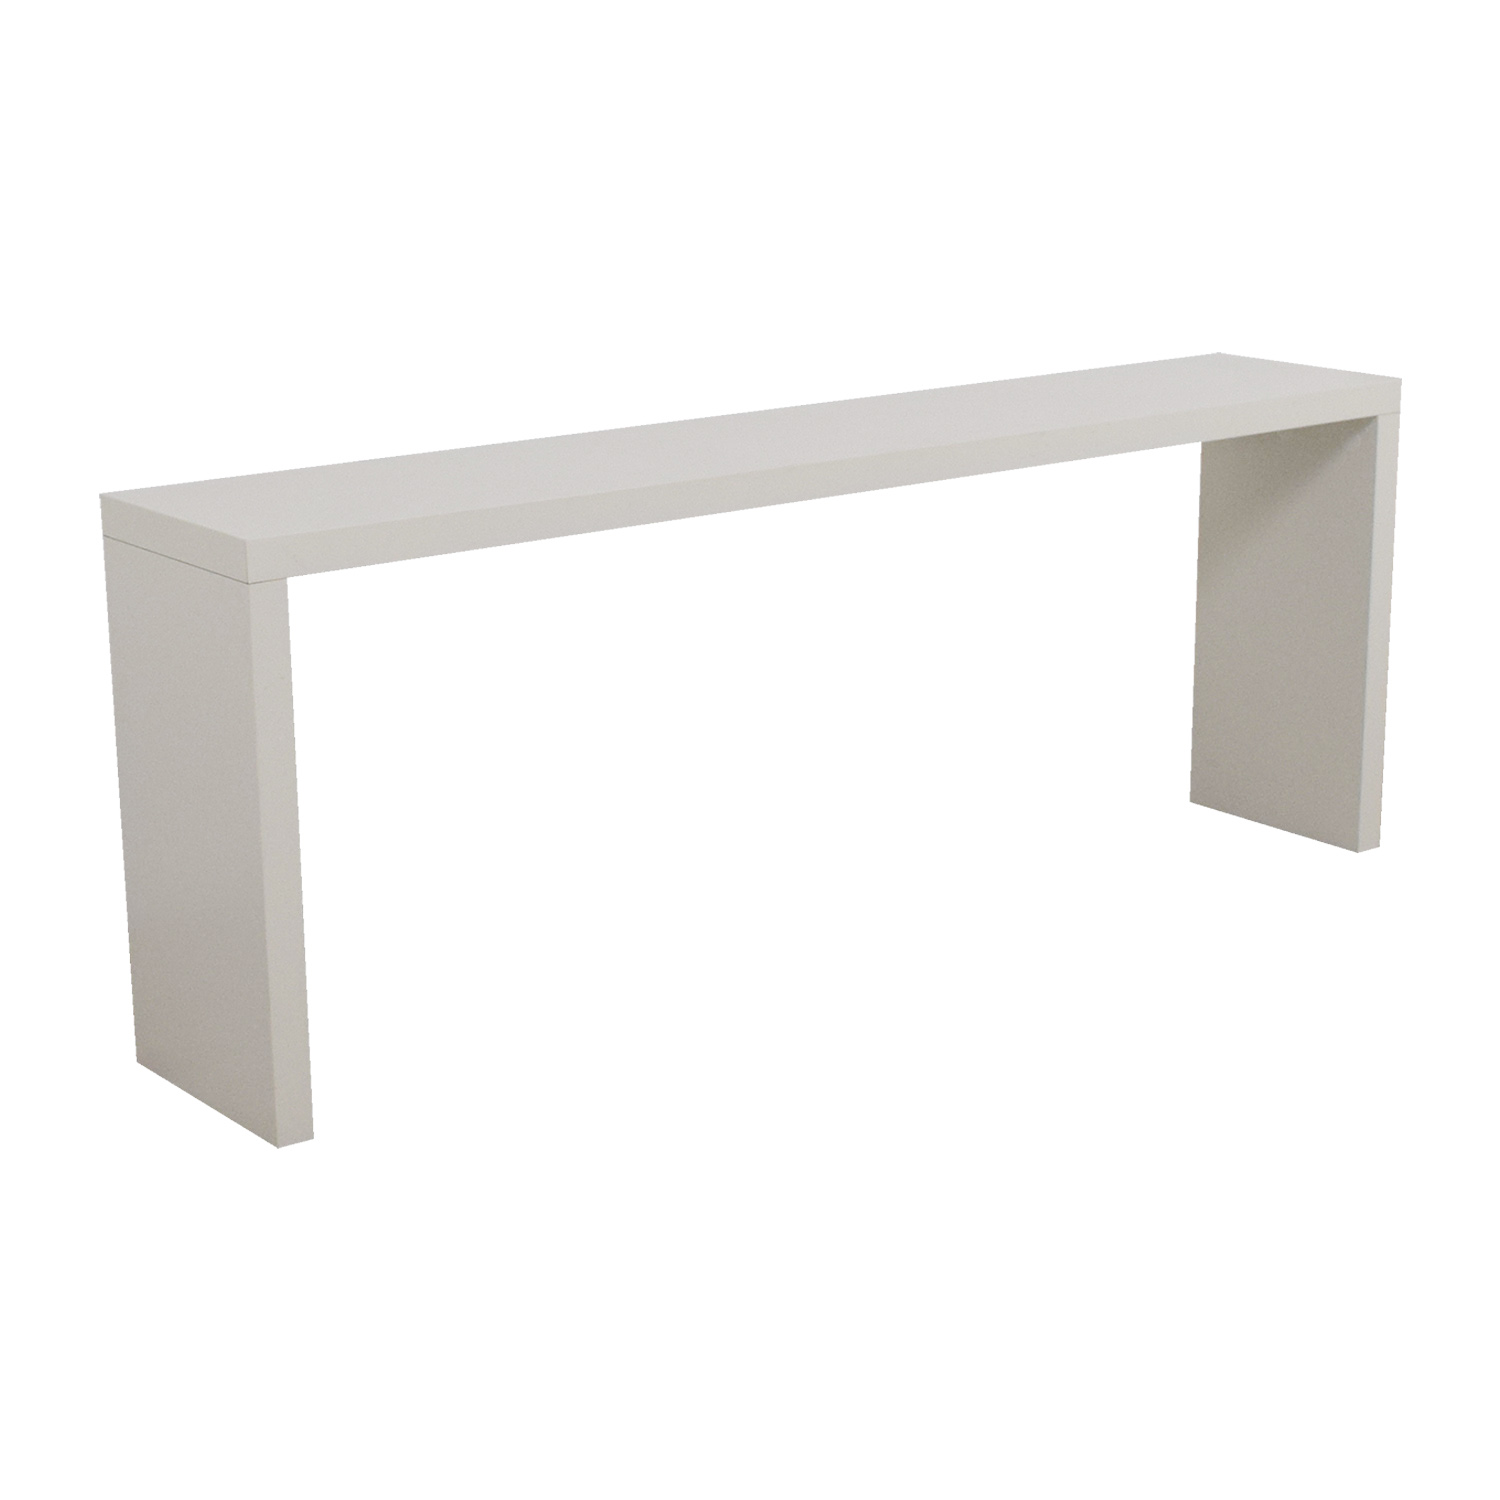 tables table design webbo wood console narrow